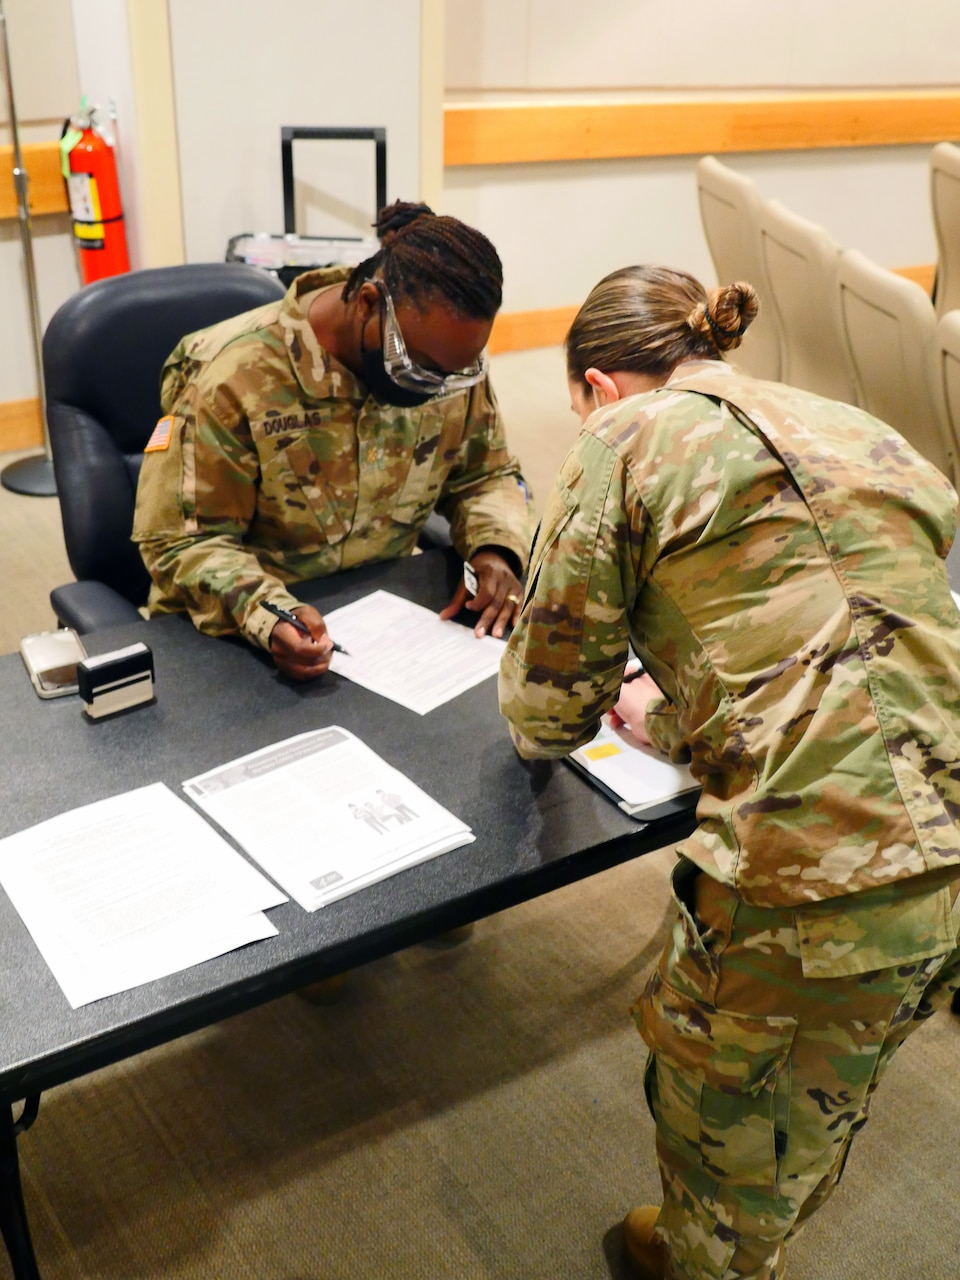 Soldiers complete paperwork on a desk.